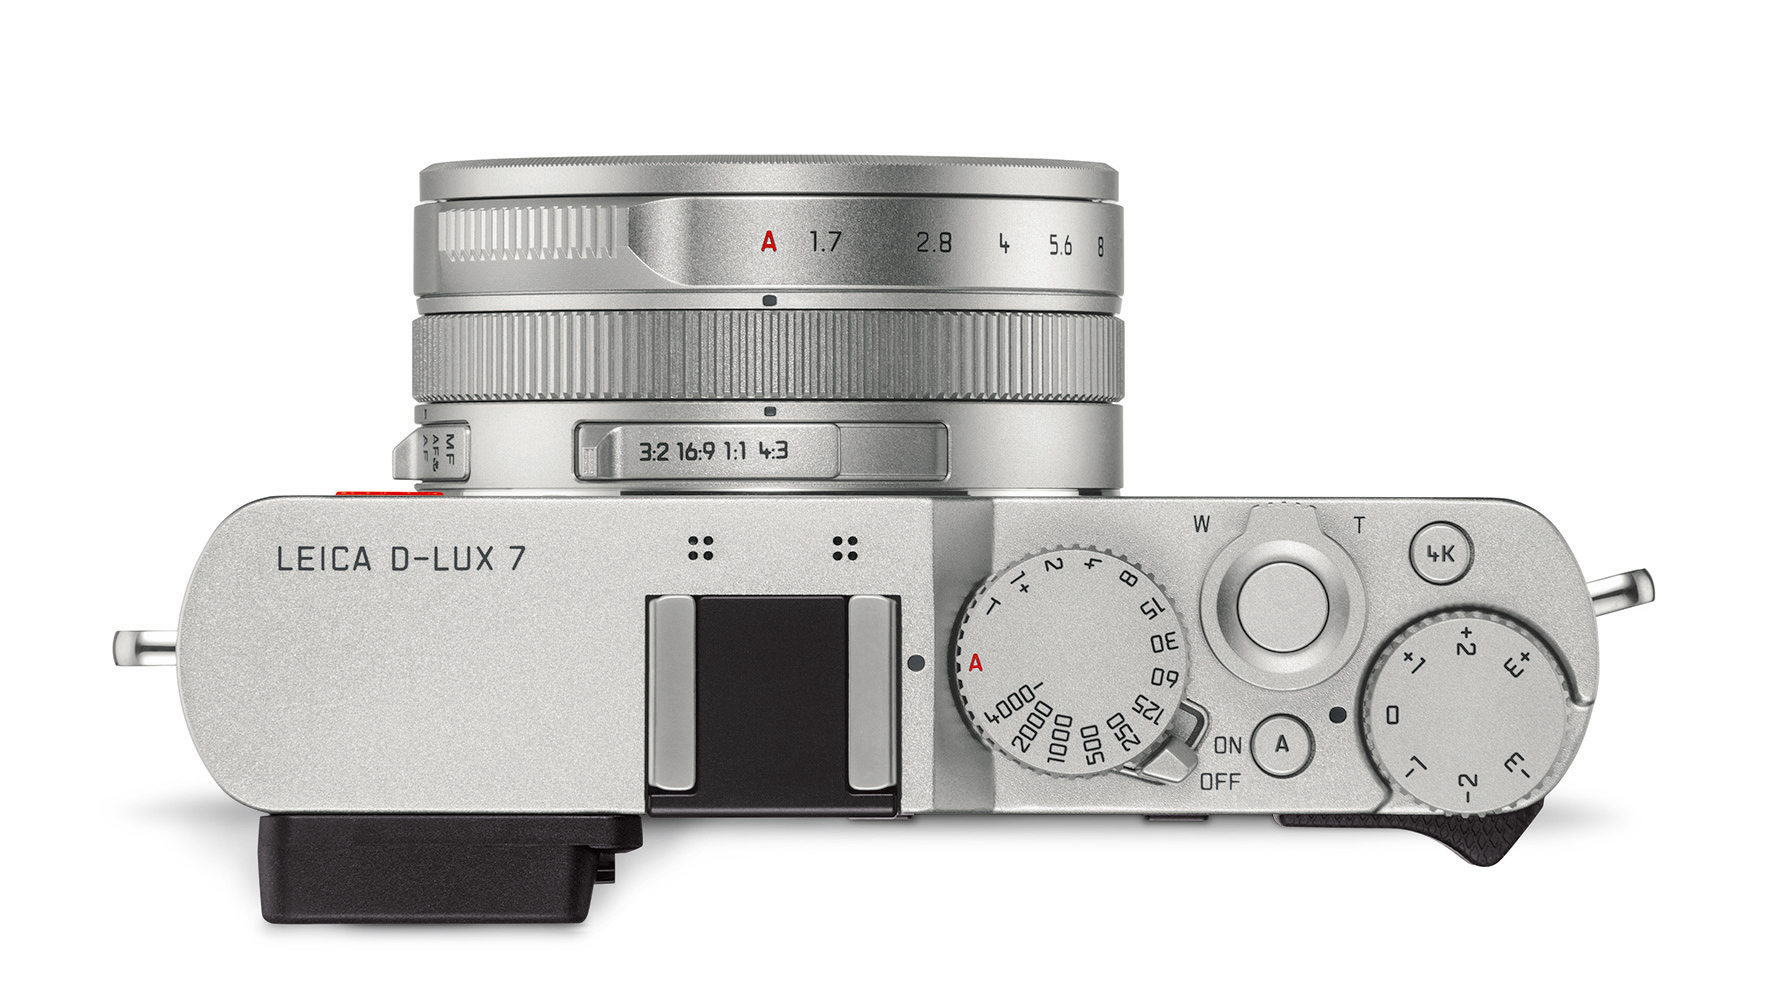 leica d lux 7 oberseite